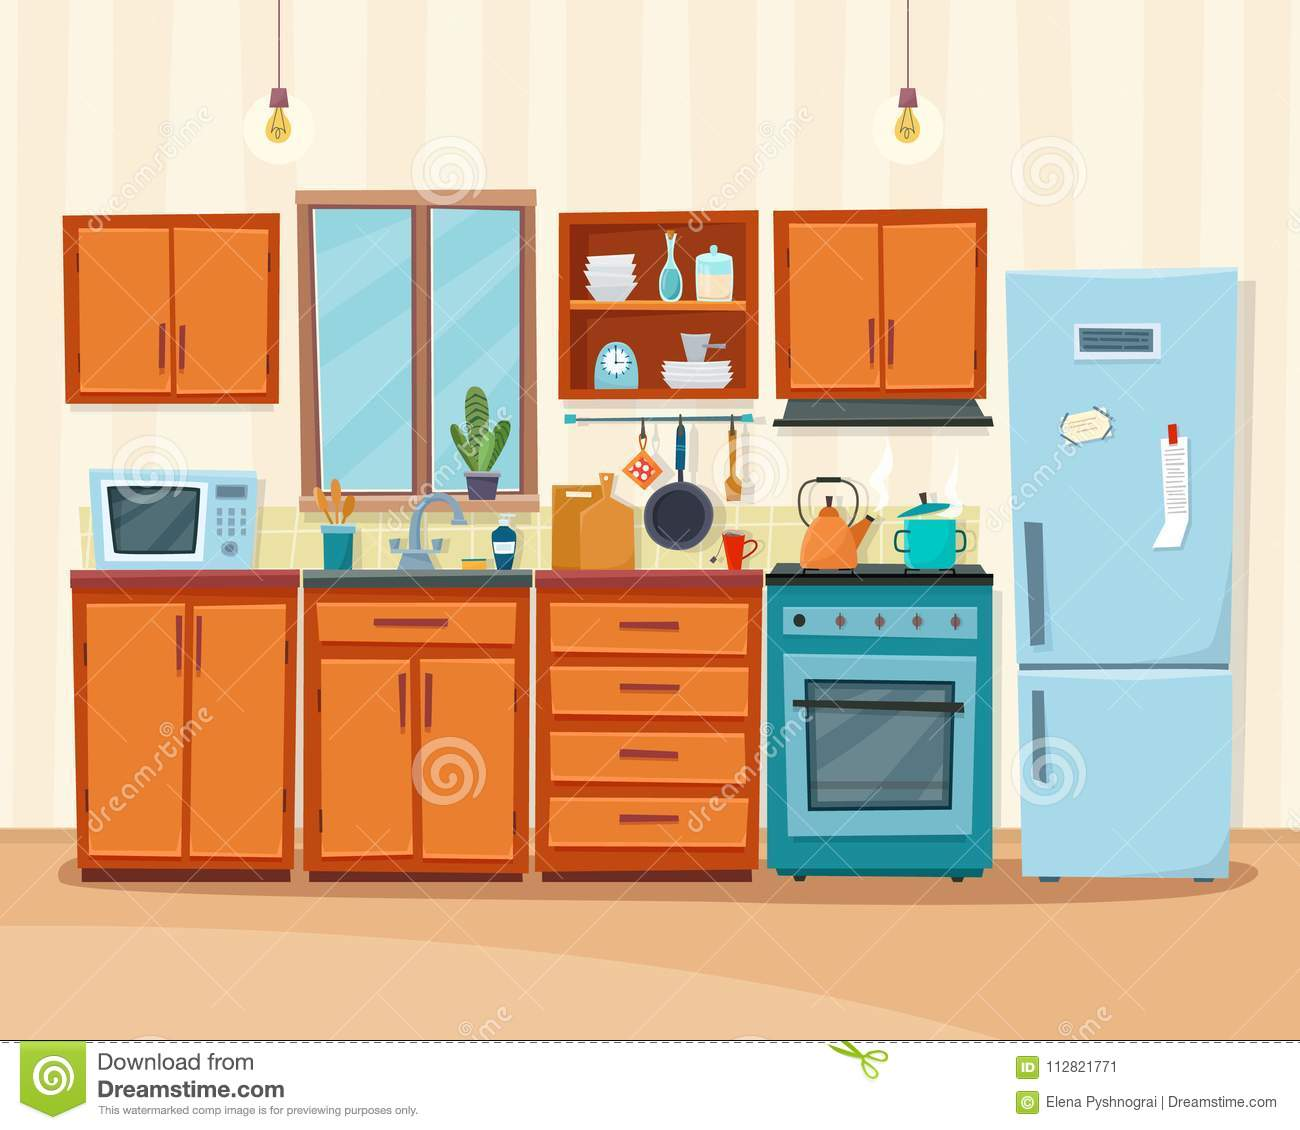 Cozy Kitchen Interior With Furniture And Stove Stock Vector